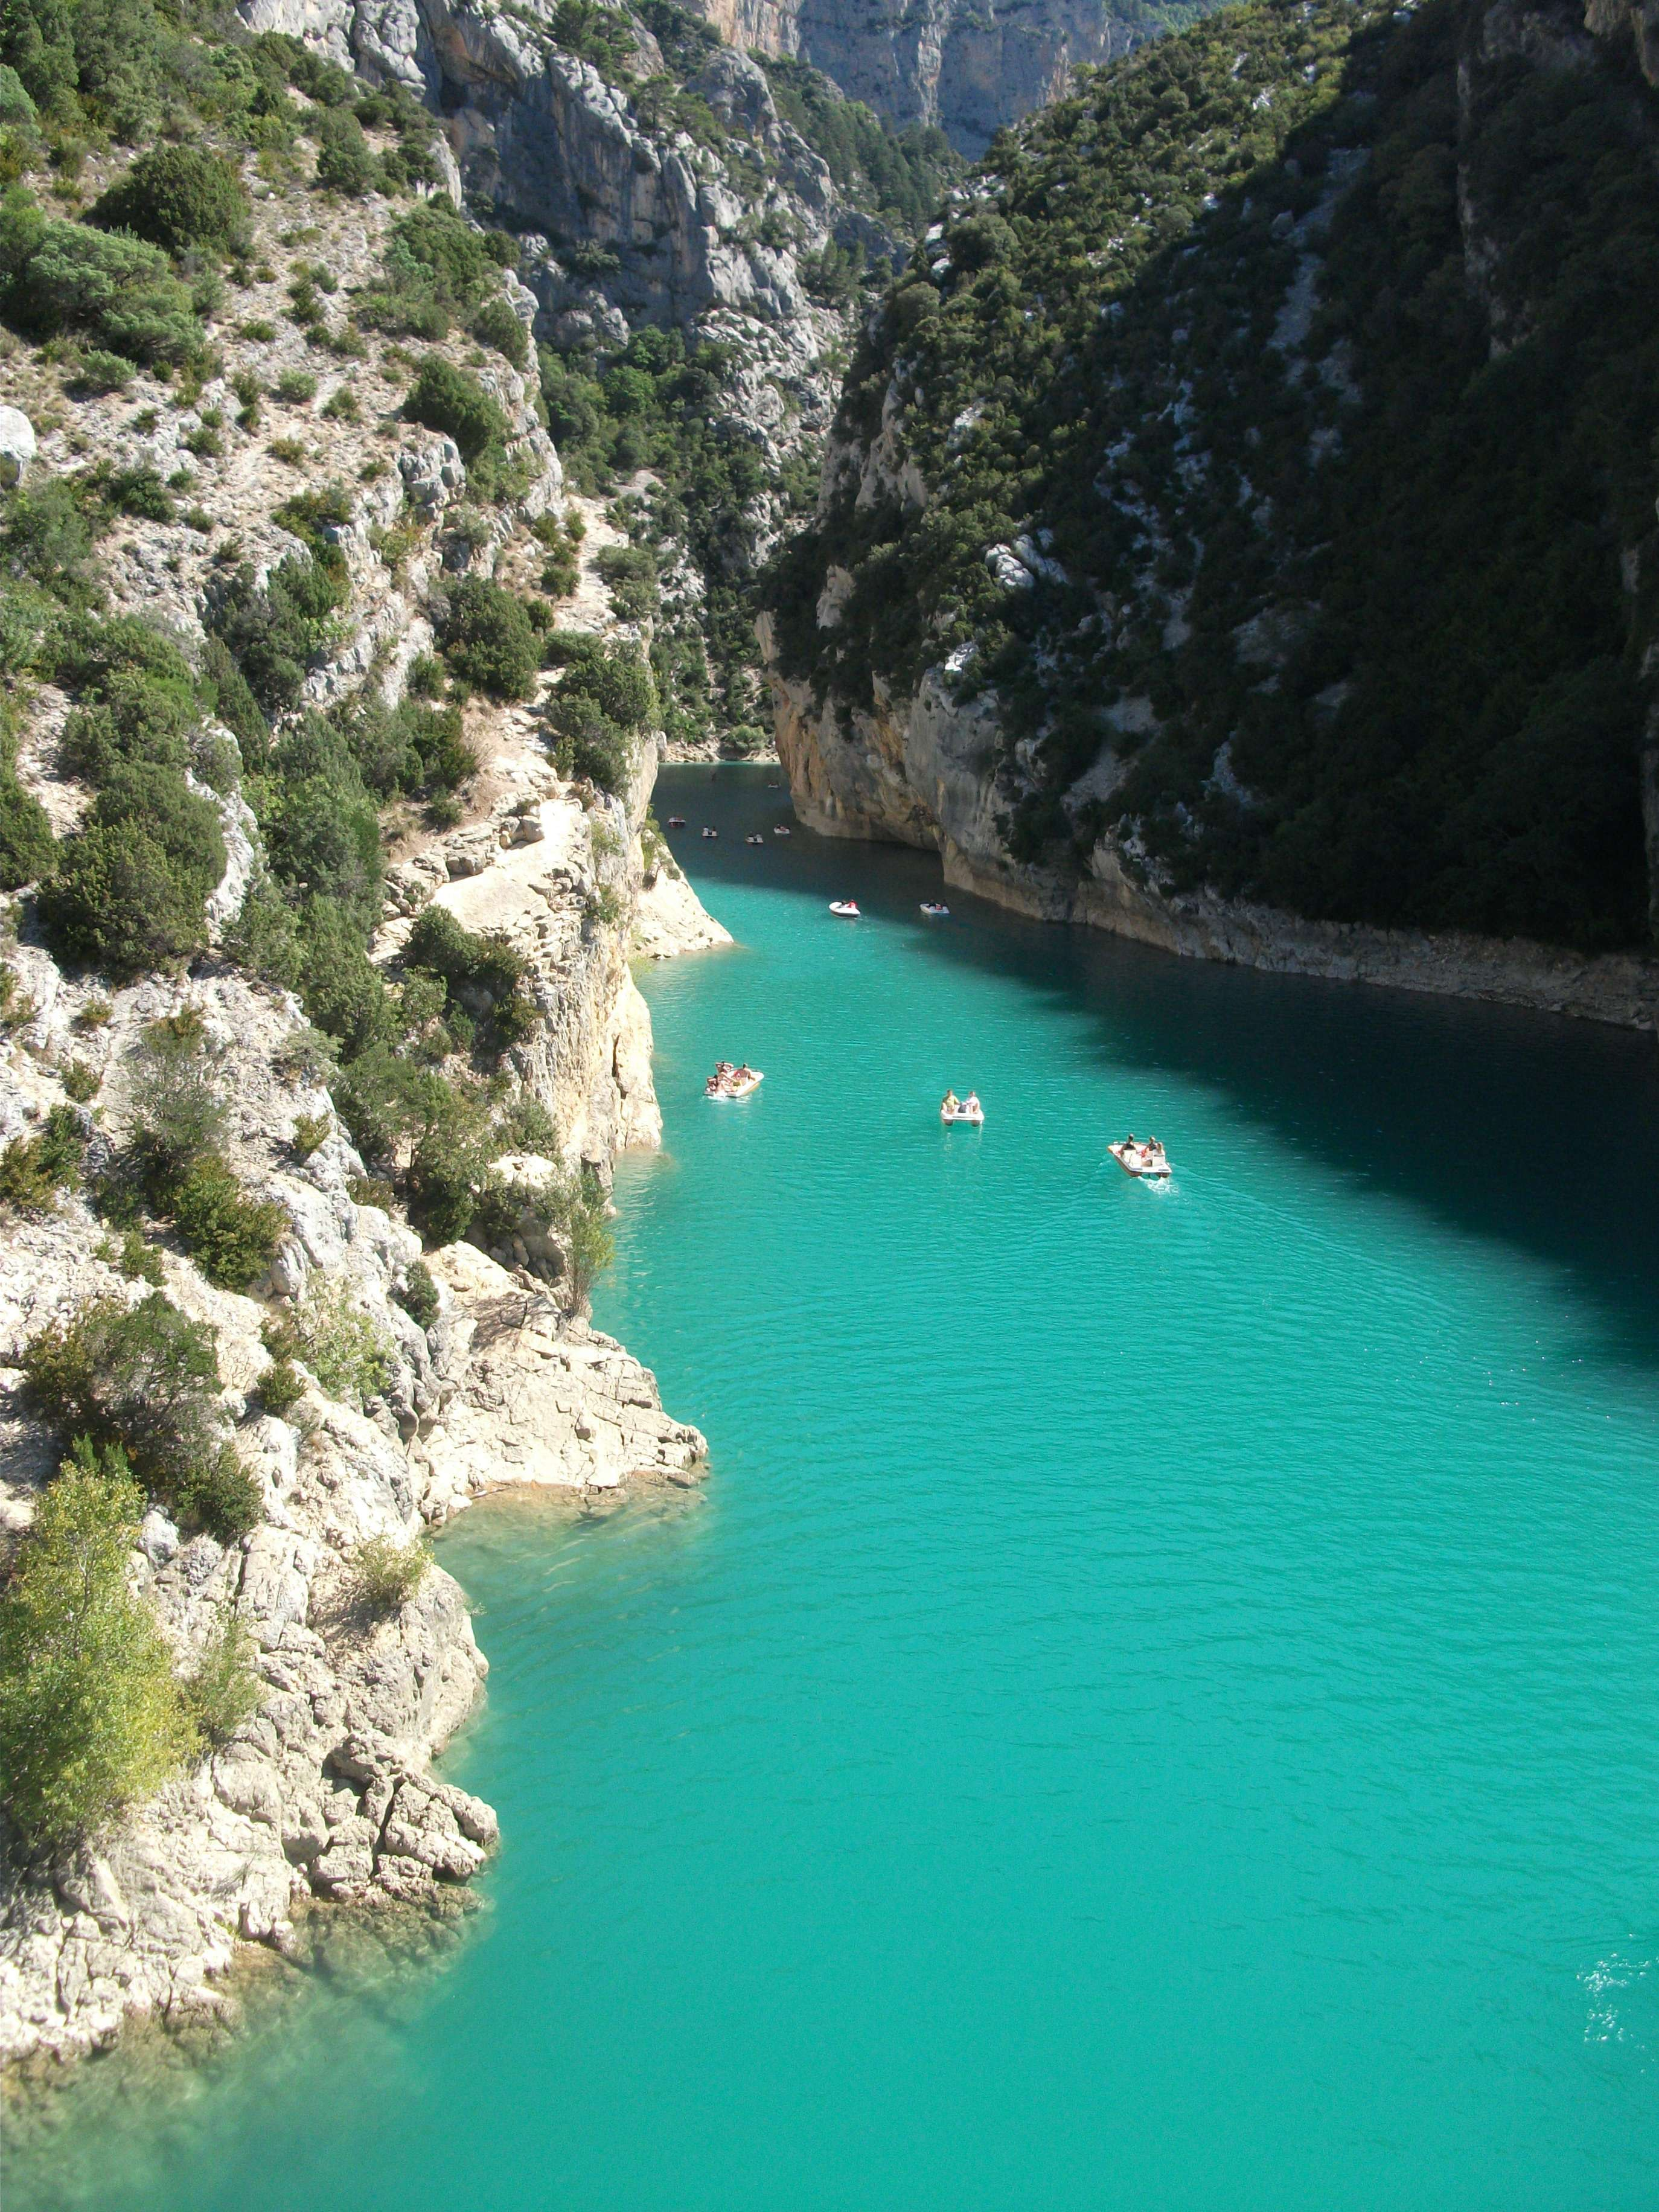 Boats on turquoise water in a white-rock canyon